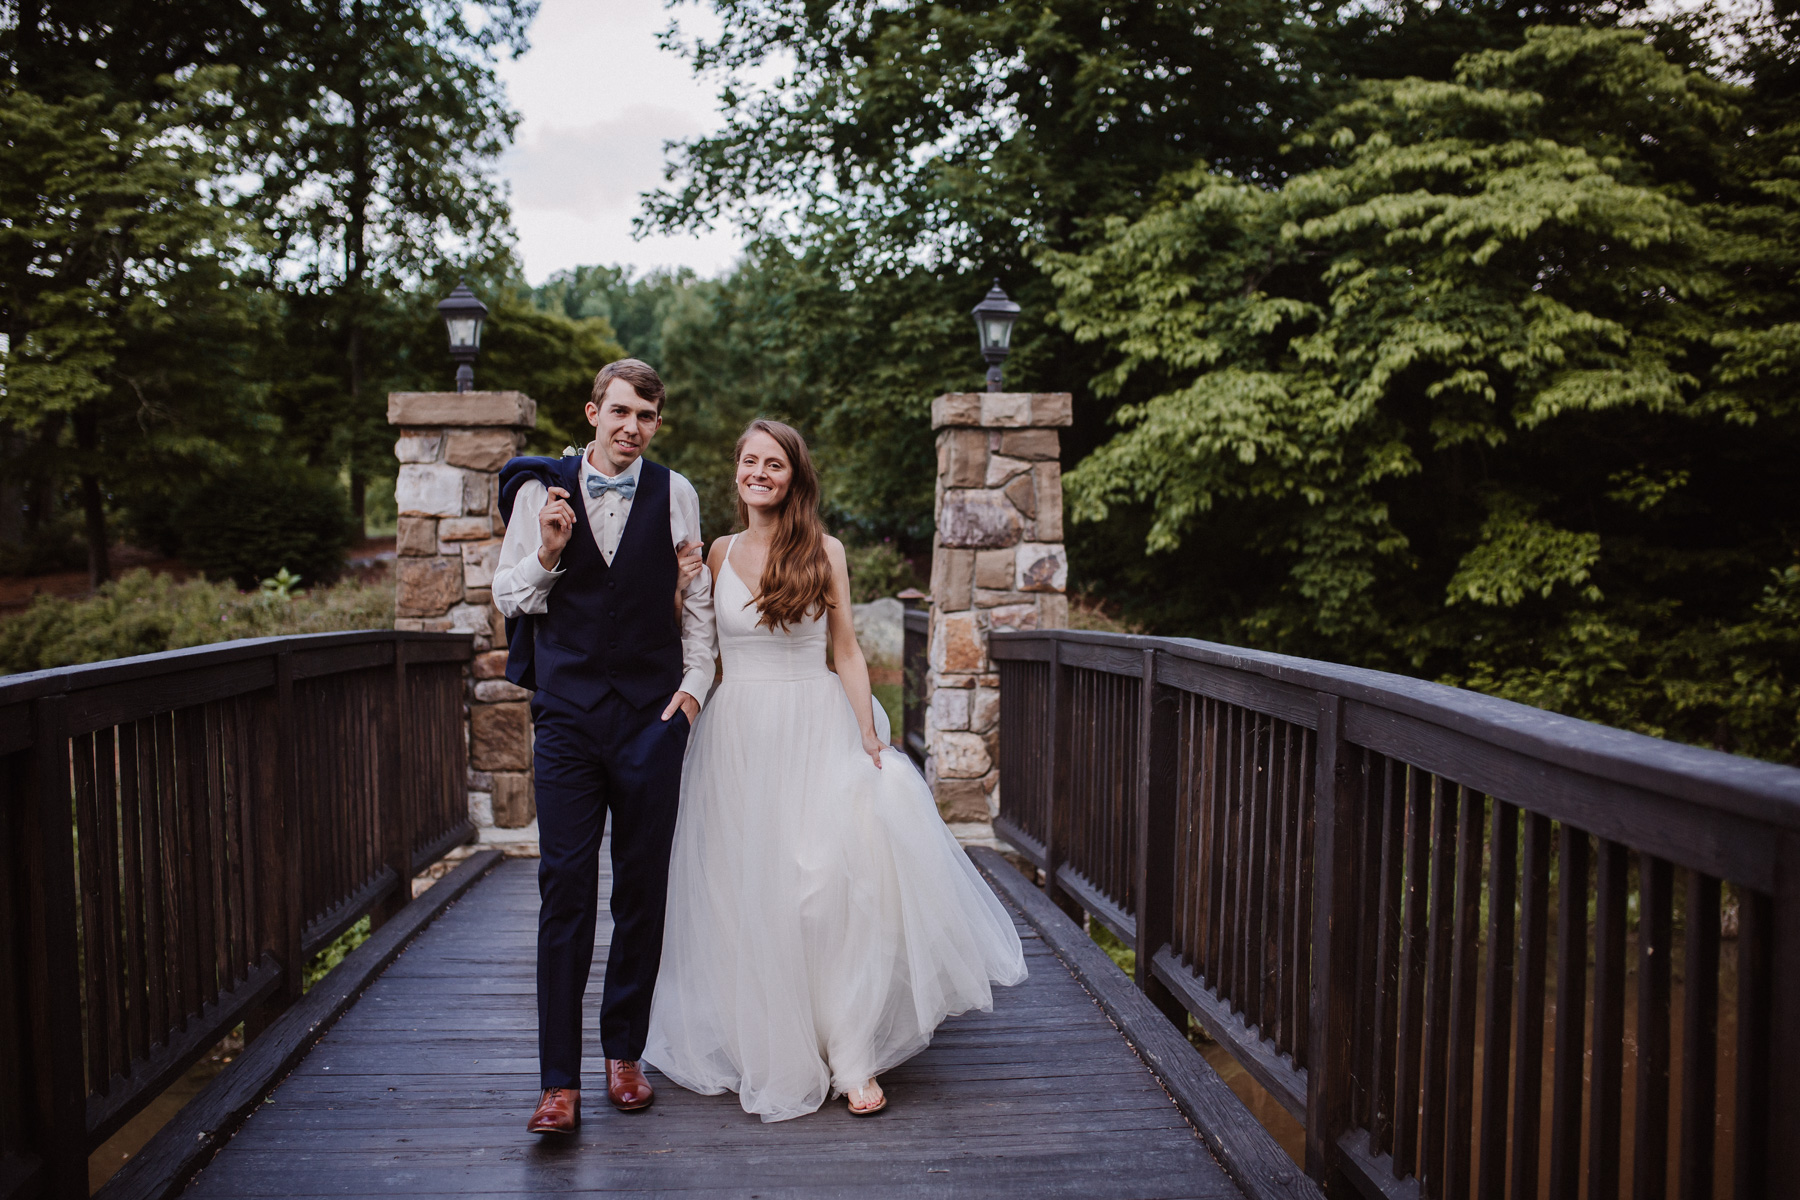 Spring Wedding at Noah's Event Venue in High Point, NC by Kayli LaFon Photography